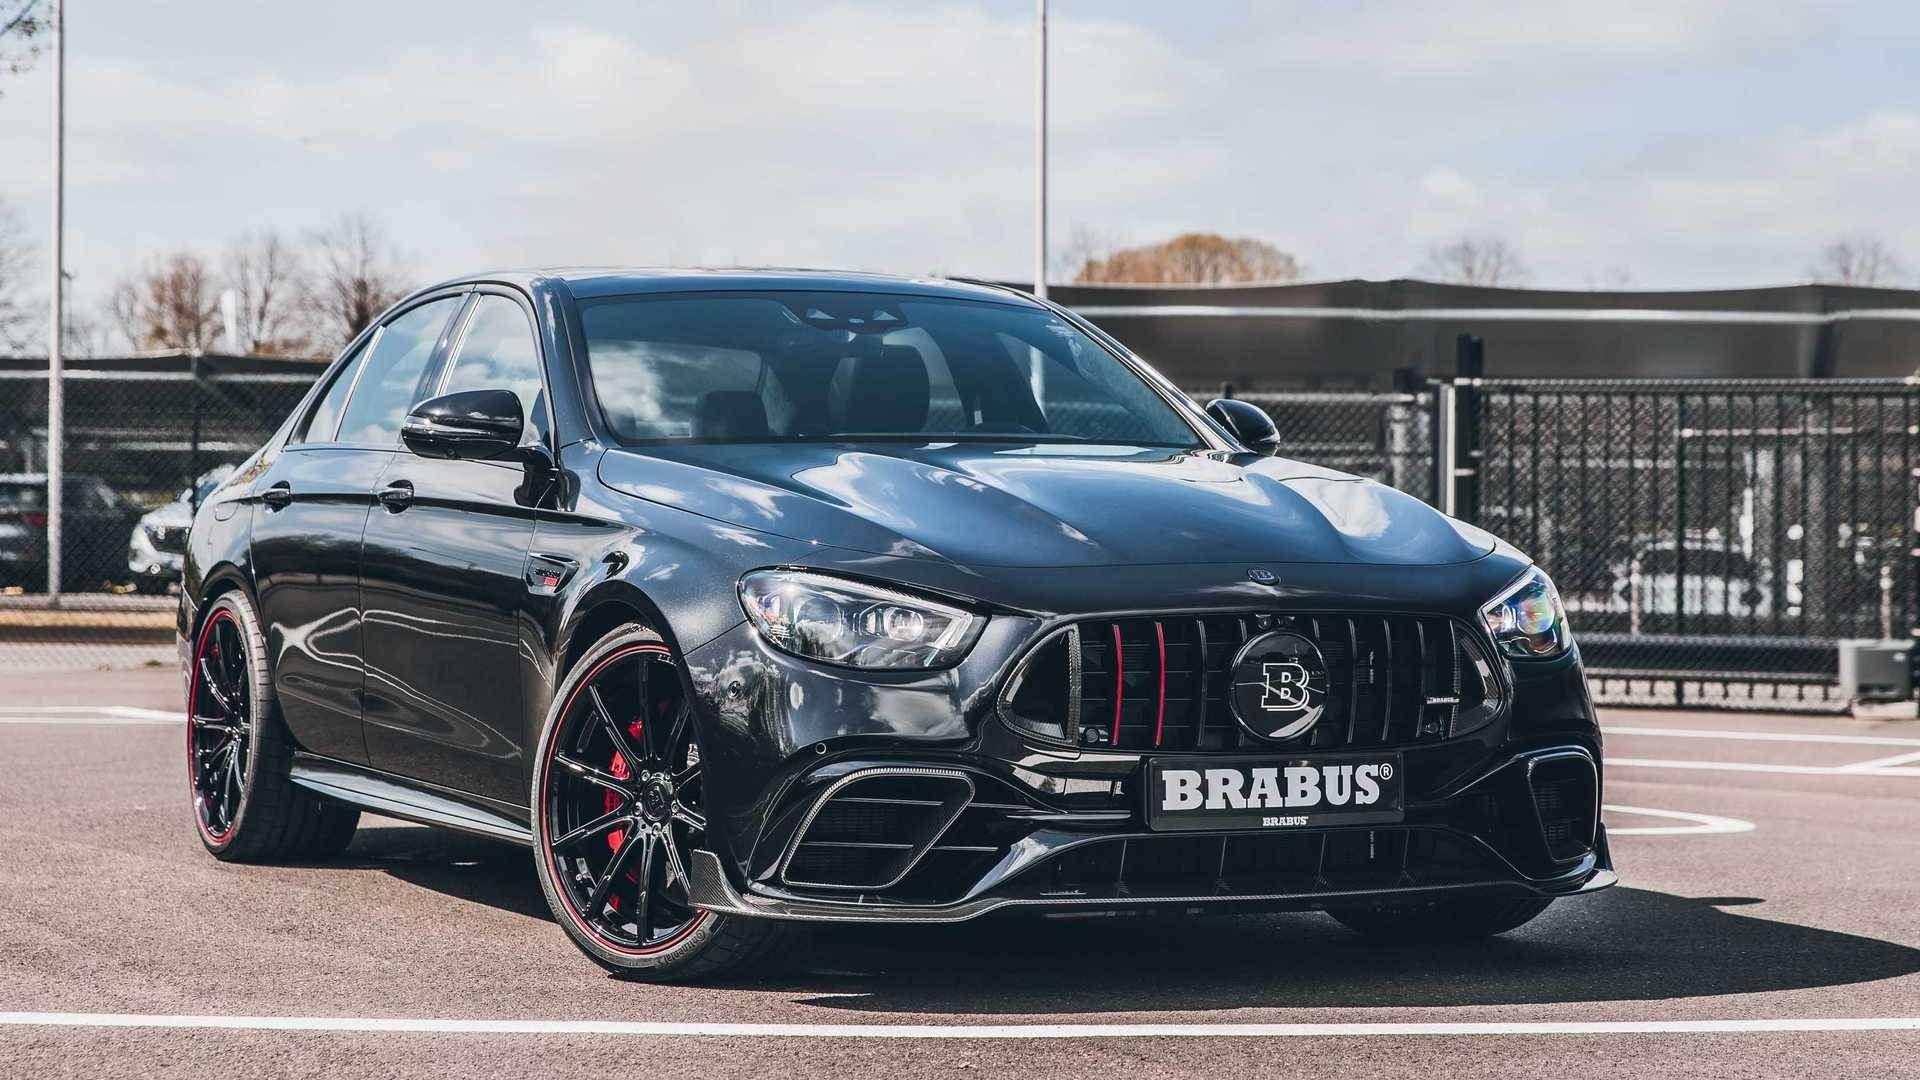 You know, it just happens sometimes that someone buys a shiny new Mercedes-AMG E 63 S 4Matic+ only to discover that 612 PS (603 HP / 450 kW) somehow doesn't feel crazy enough. Some seek professional medical help; others turn to Brabus for an upgrade.